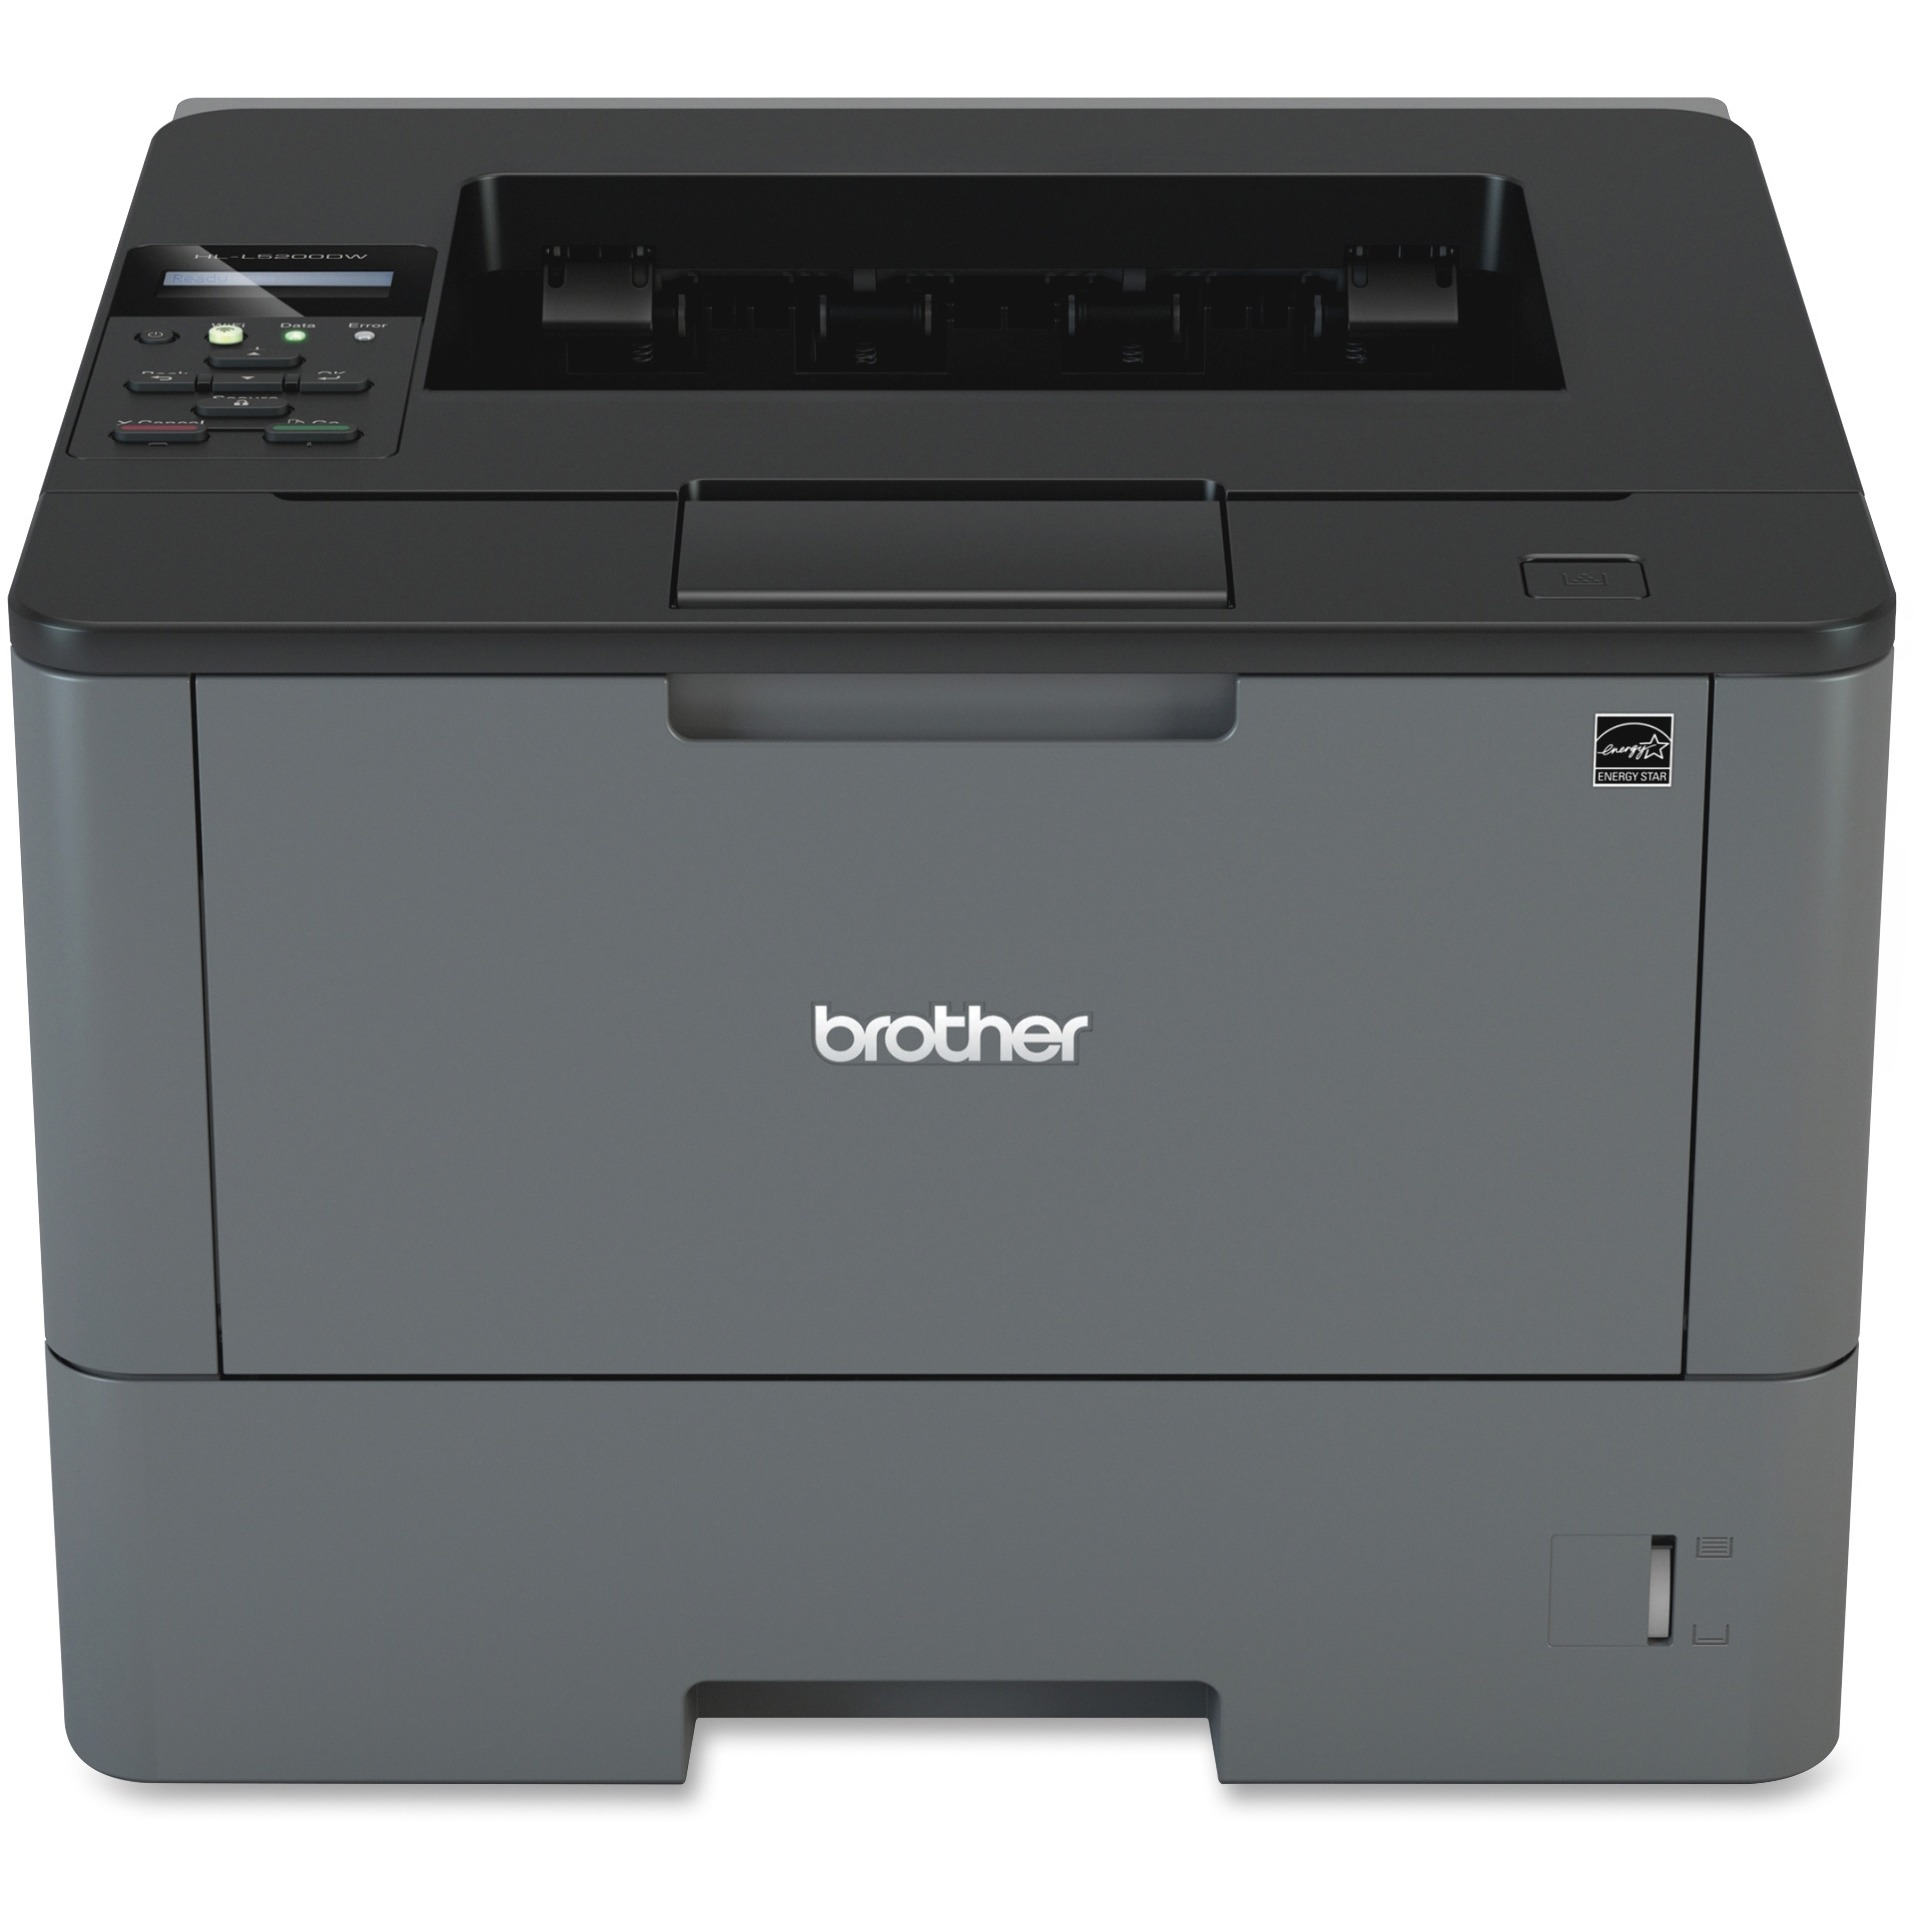 Brother Monochrome Laser Printer, HL-L5200DW, Wireless Networking, Mobile Printing, Duplex Printing